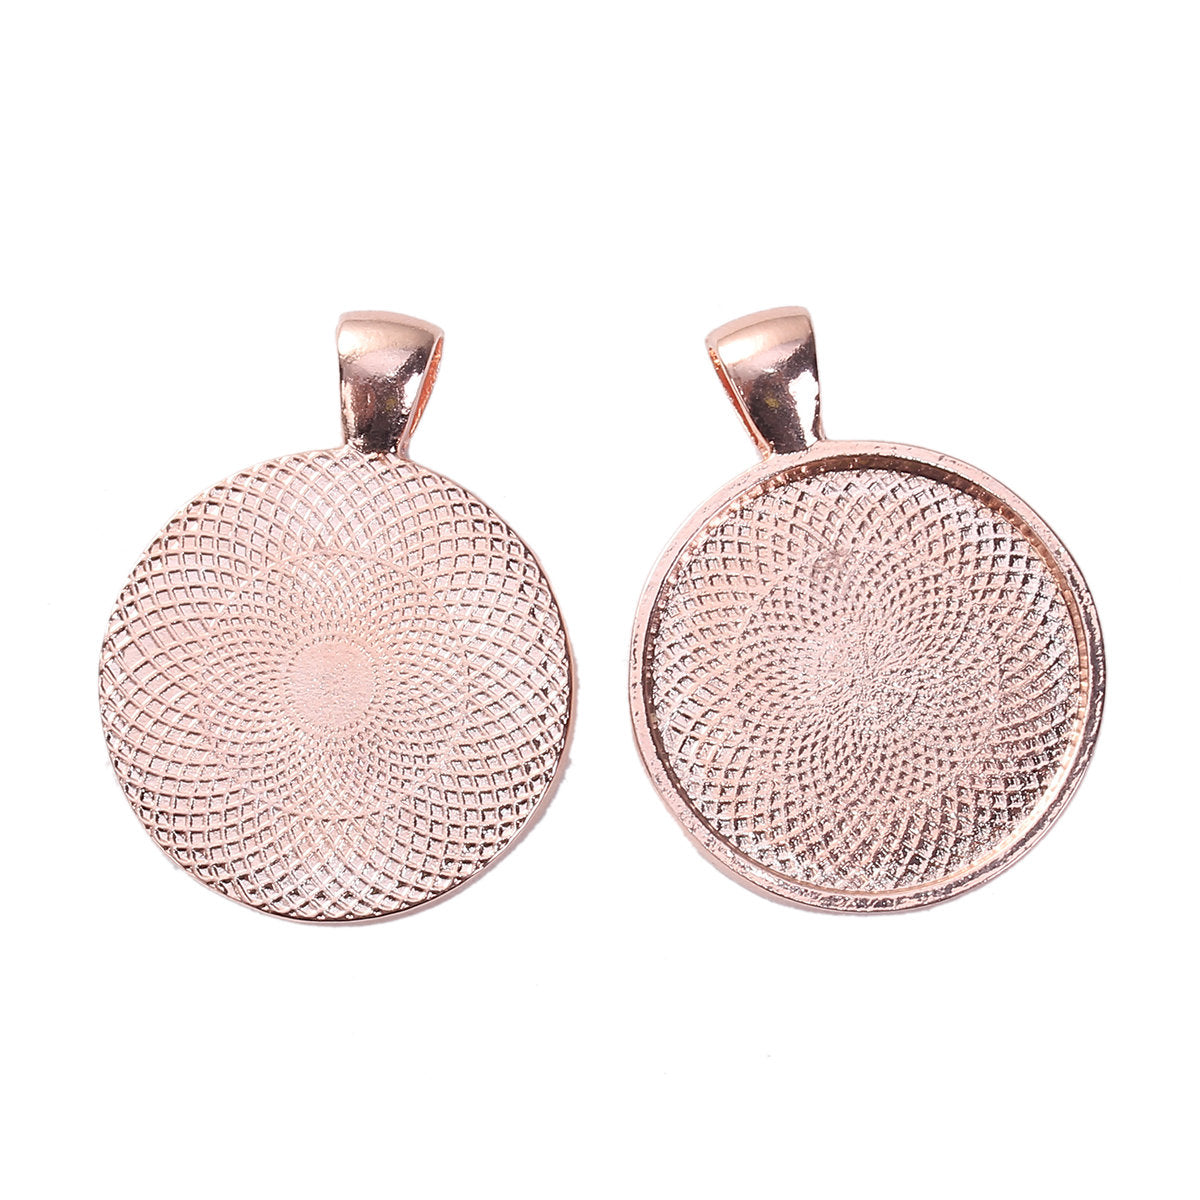 5 Rose Gold Cabochon Bezel Pendant Trays 25mm - Round 1 inch